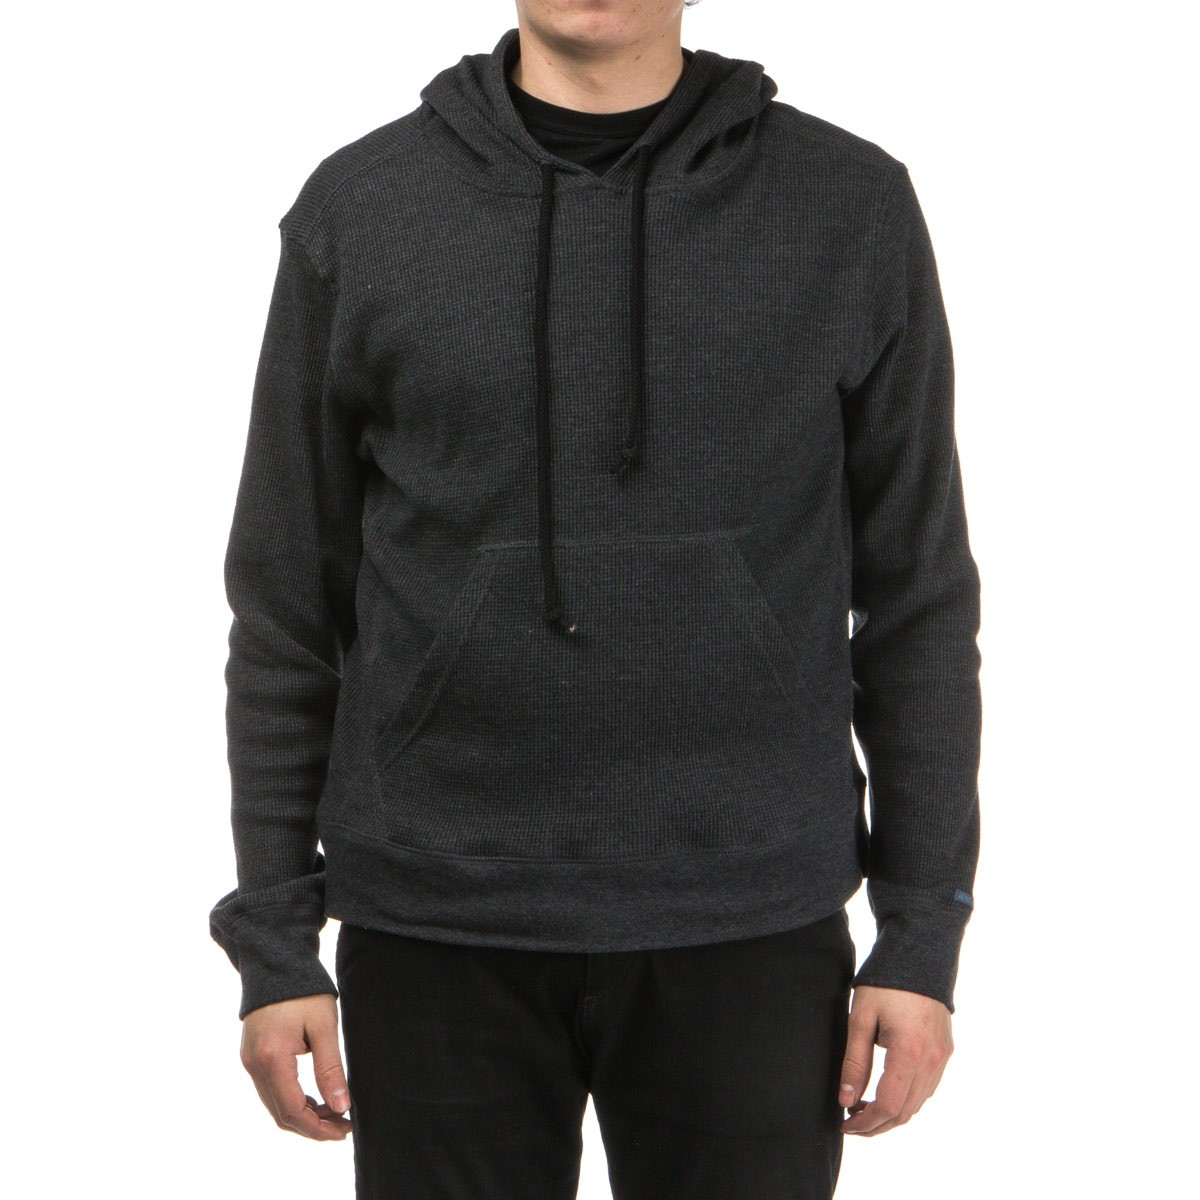 Tiller Thermal Pullover Hoodie - Black Heather